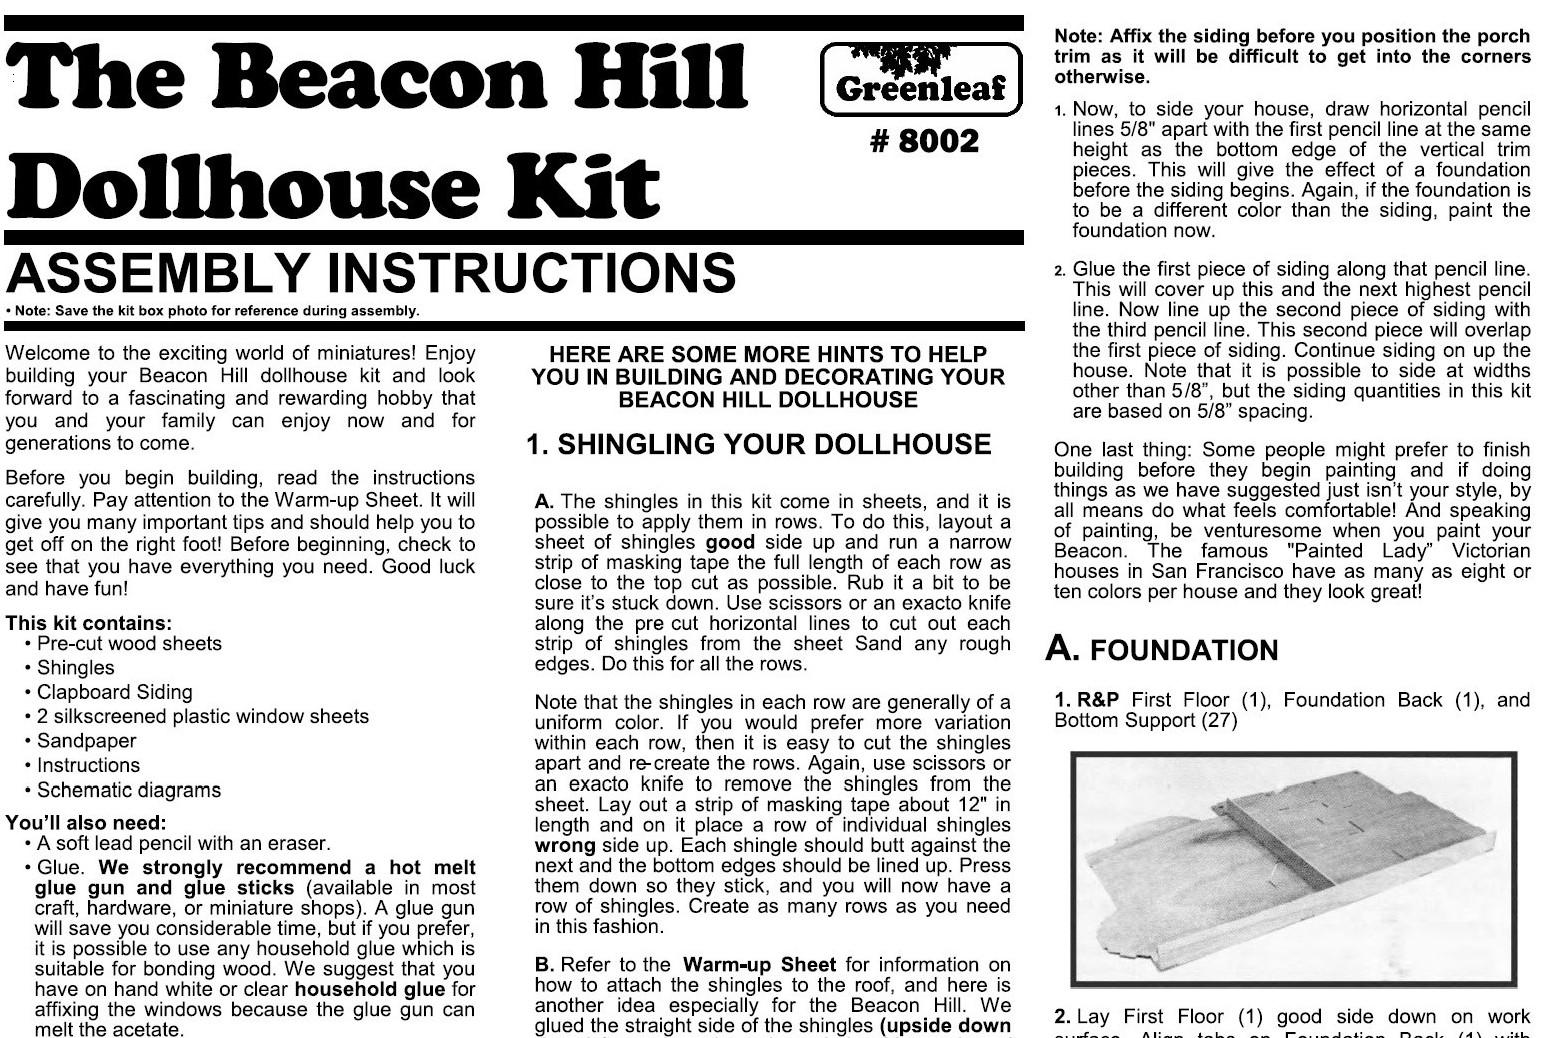 The Beacon Hill Dollhouse Instructions